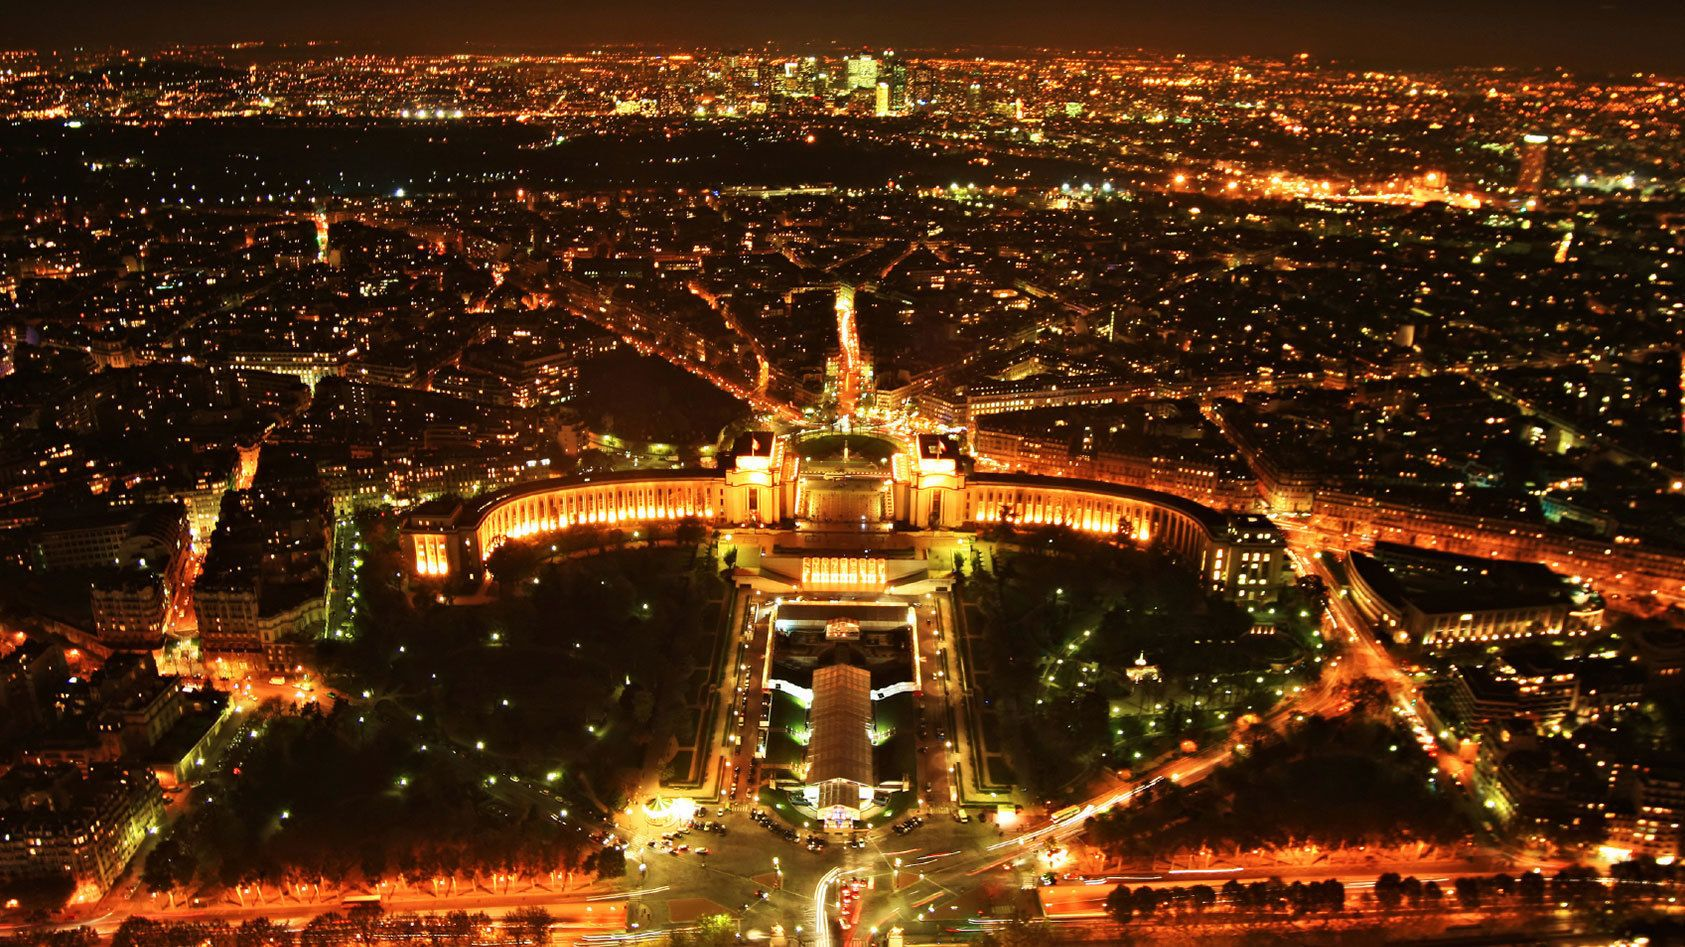 Aerial view of Paris at night.